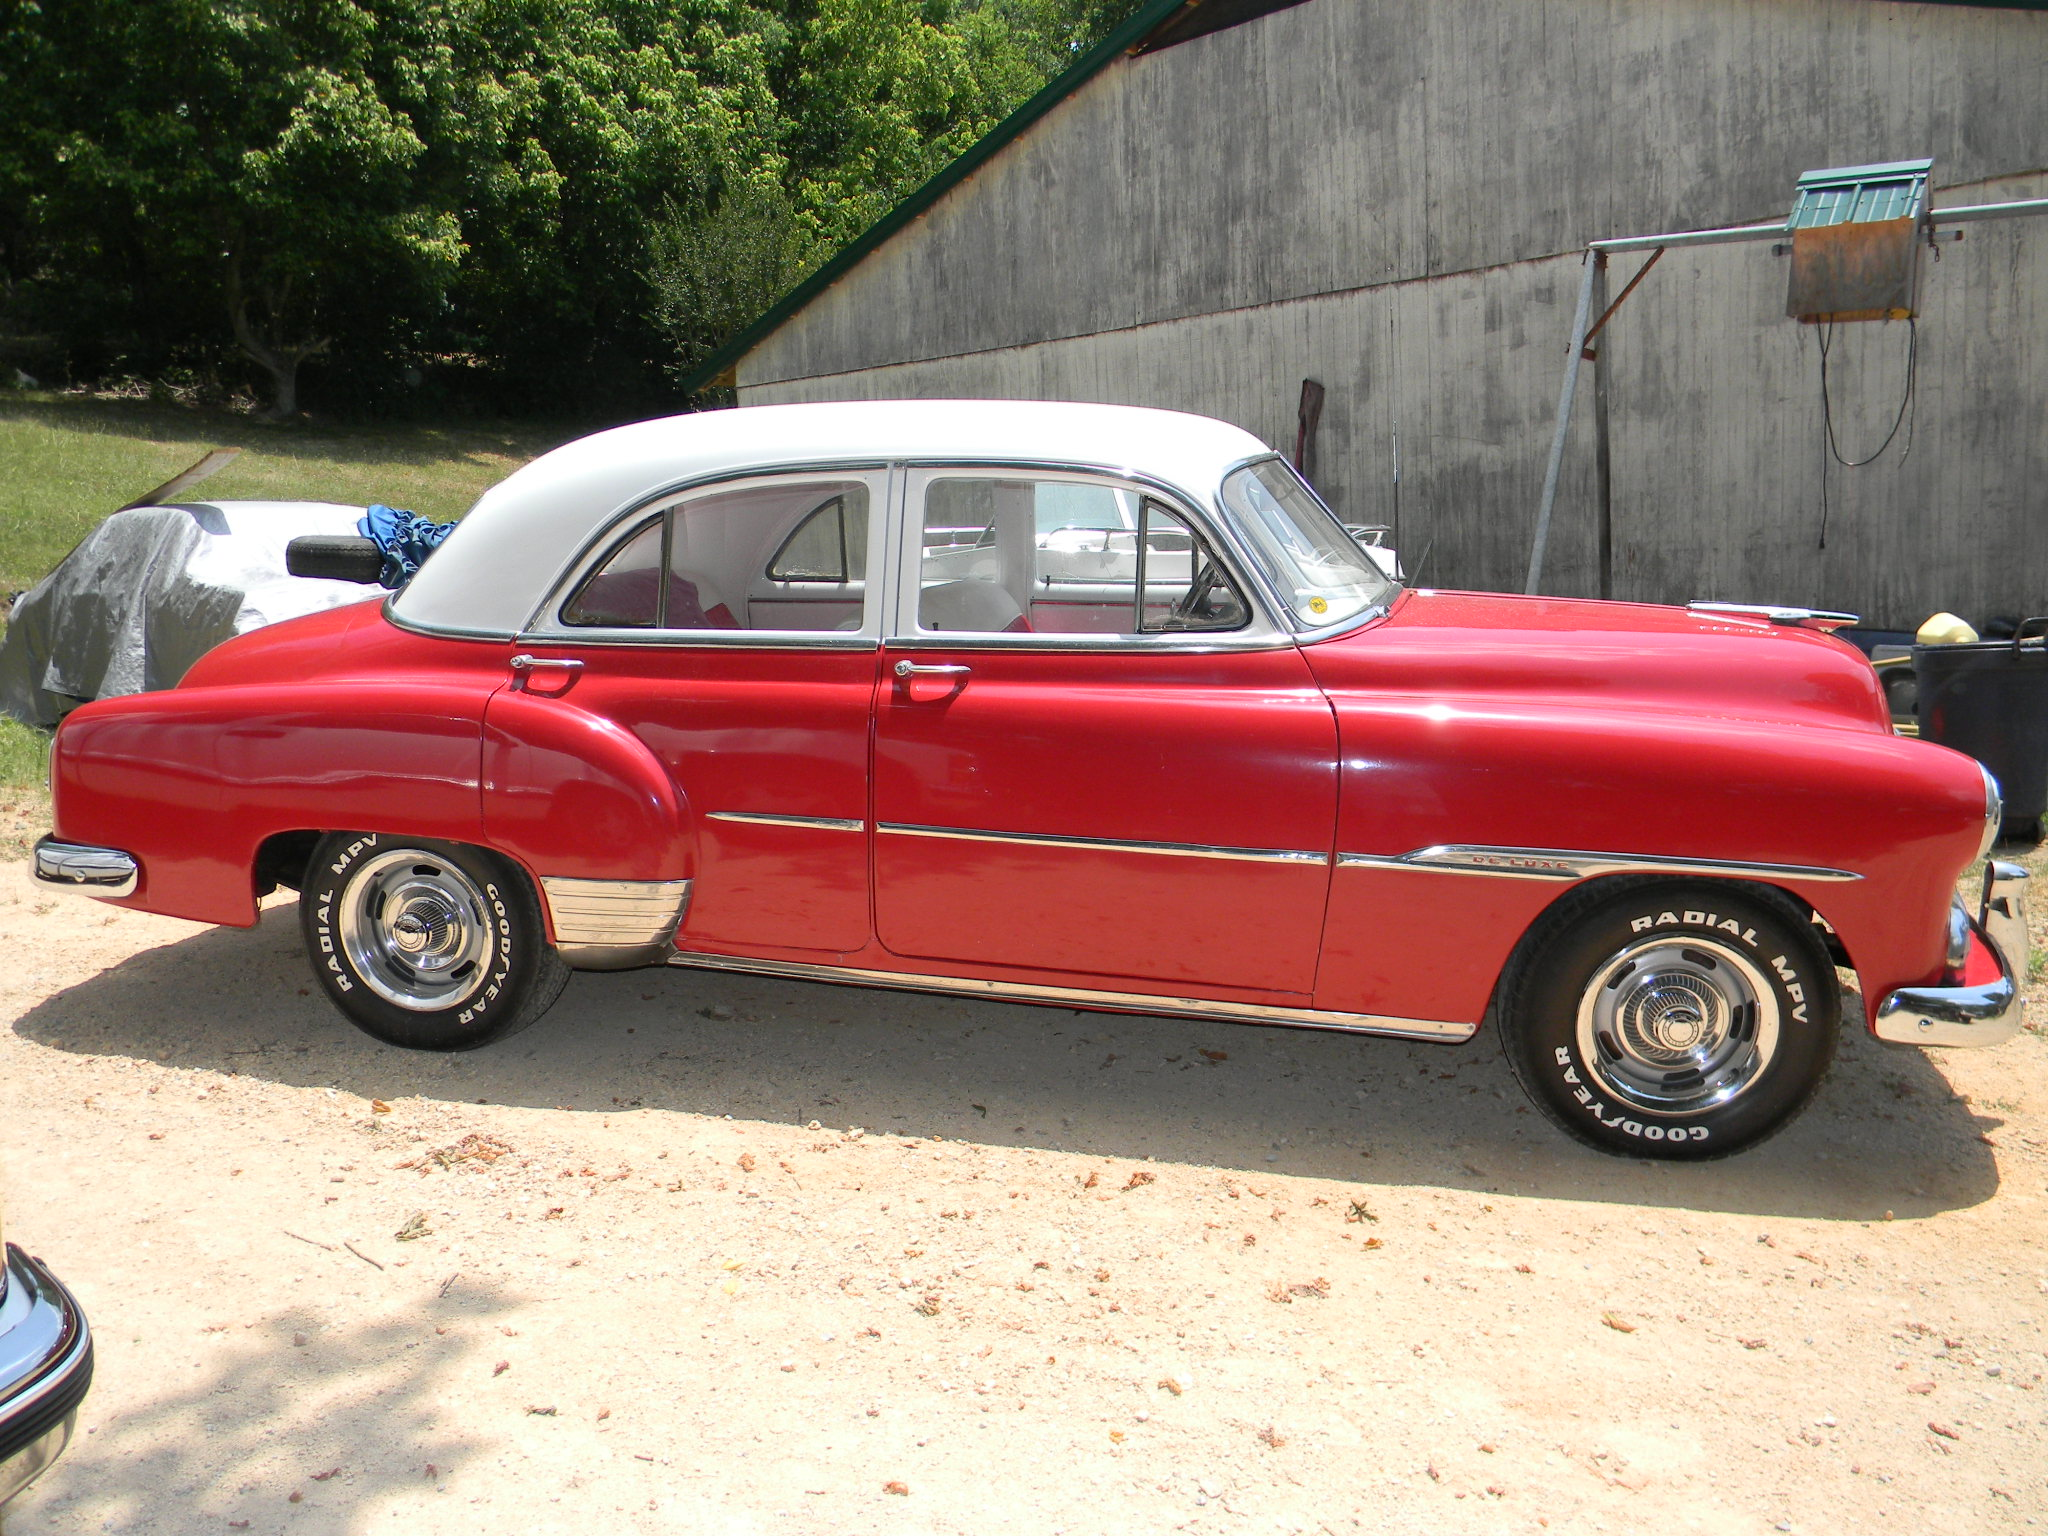 Rick 39 s custom upholstery 1951 red chevy car page for 1951 chevy deluxe 4 door for sale